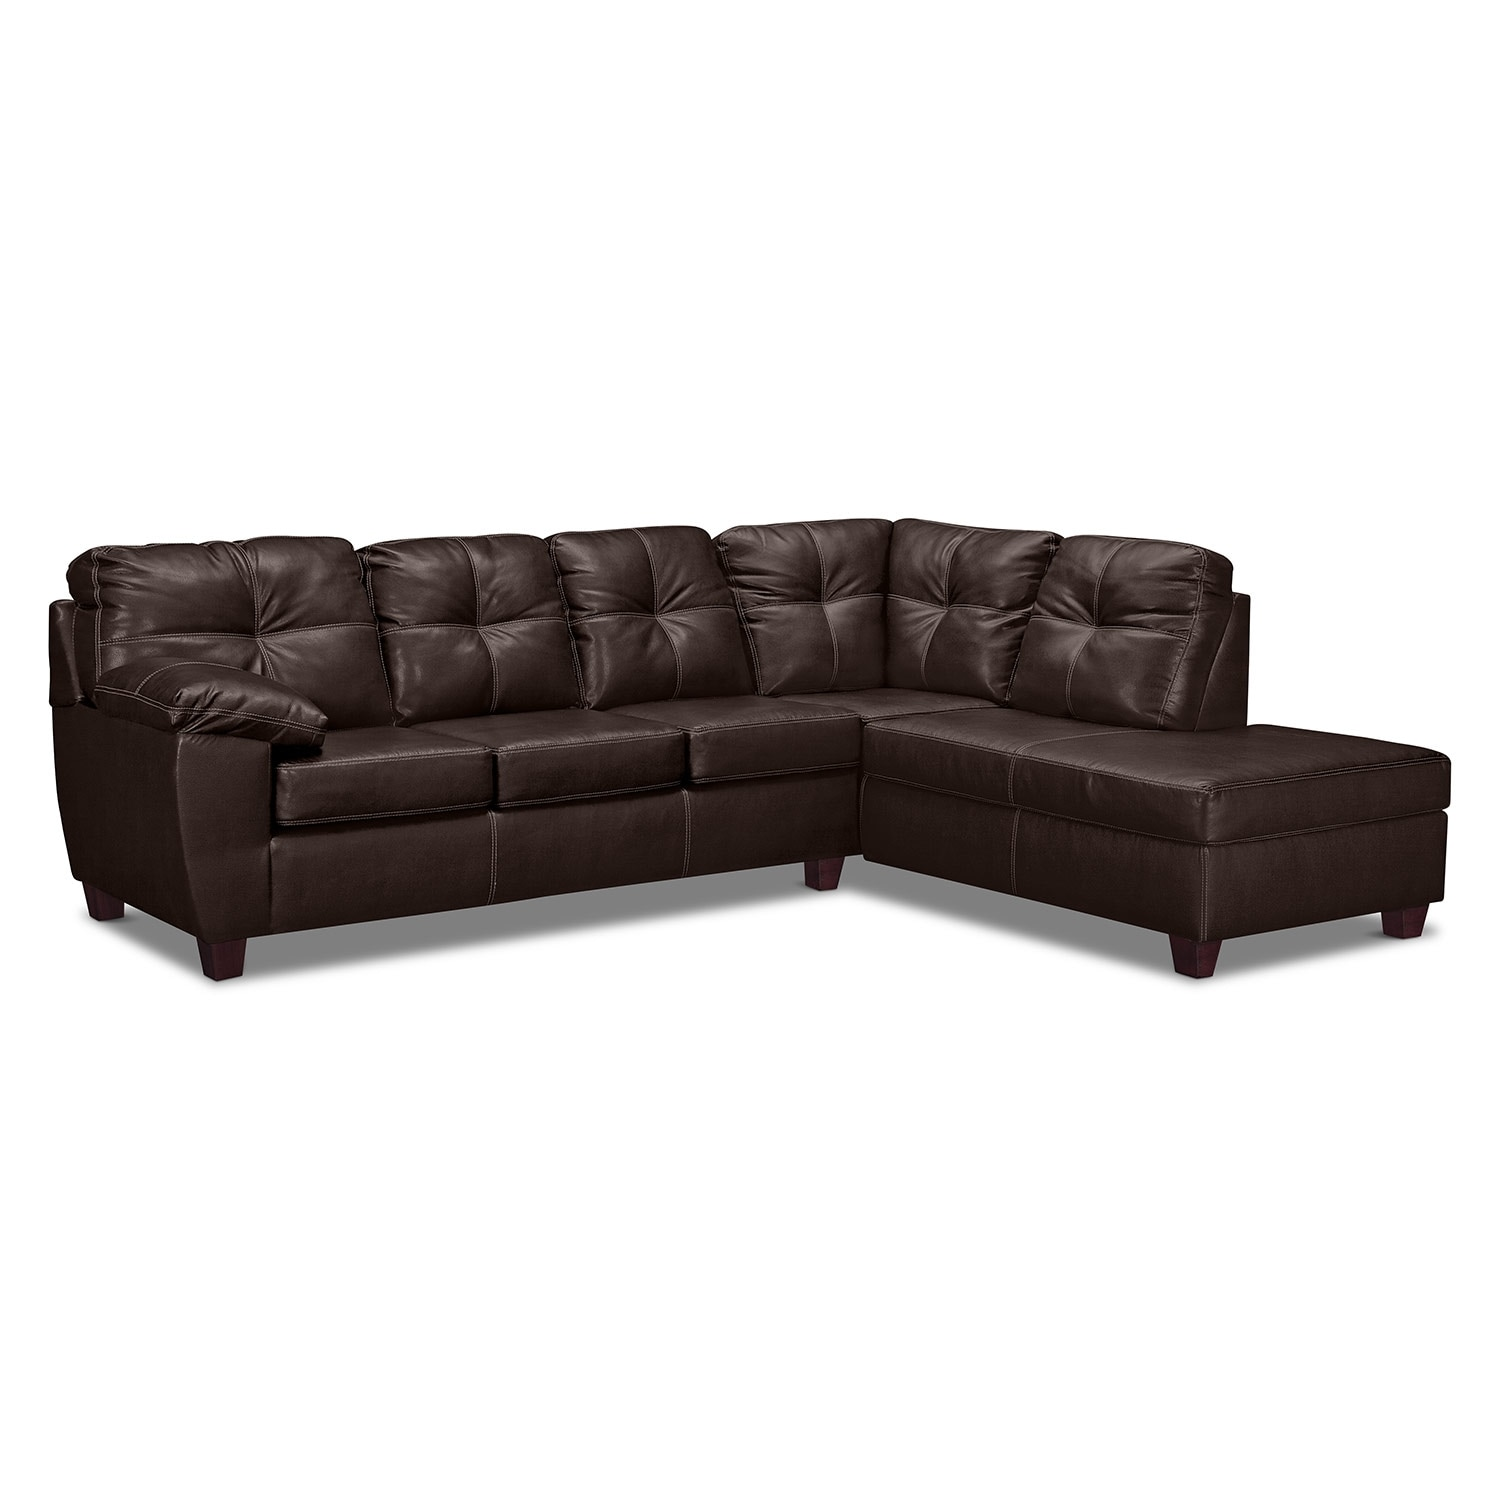 Rialto Brown 2 Pc. Innerspring Sleeper Sectional with Right-Facing Chaise